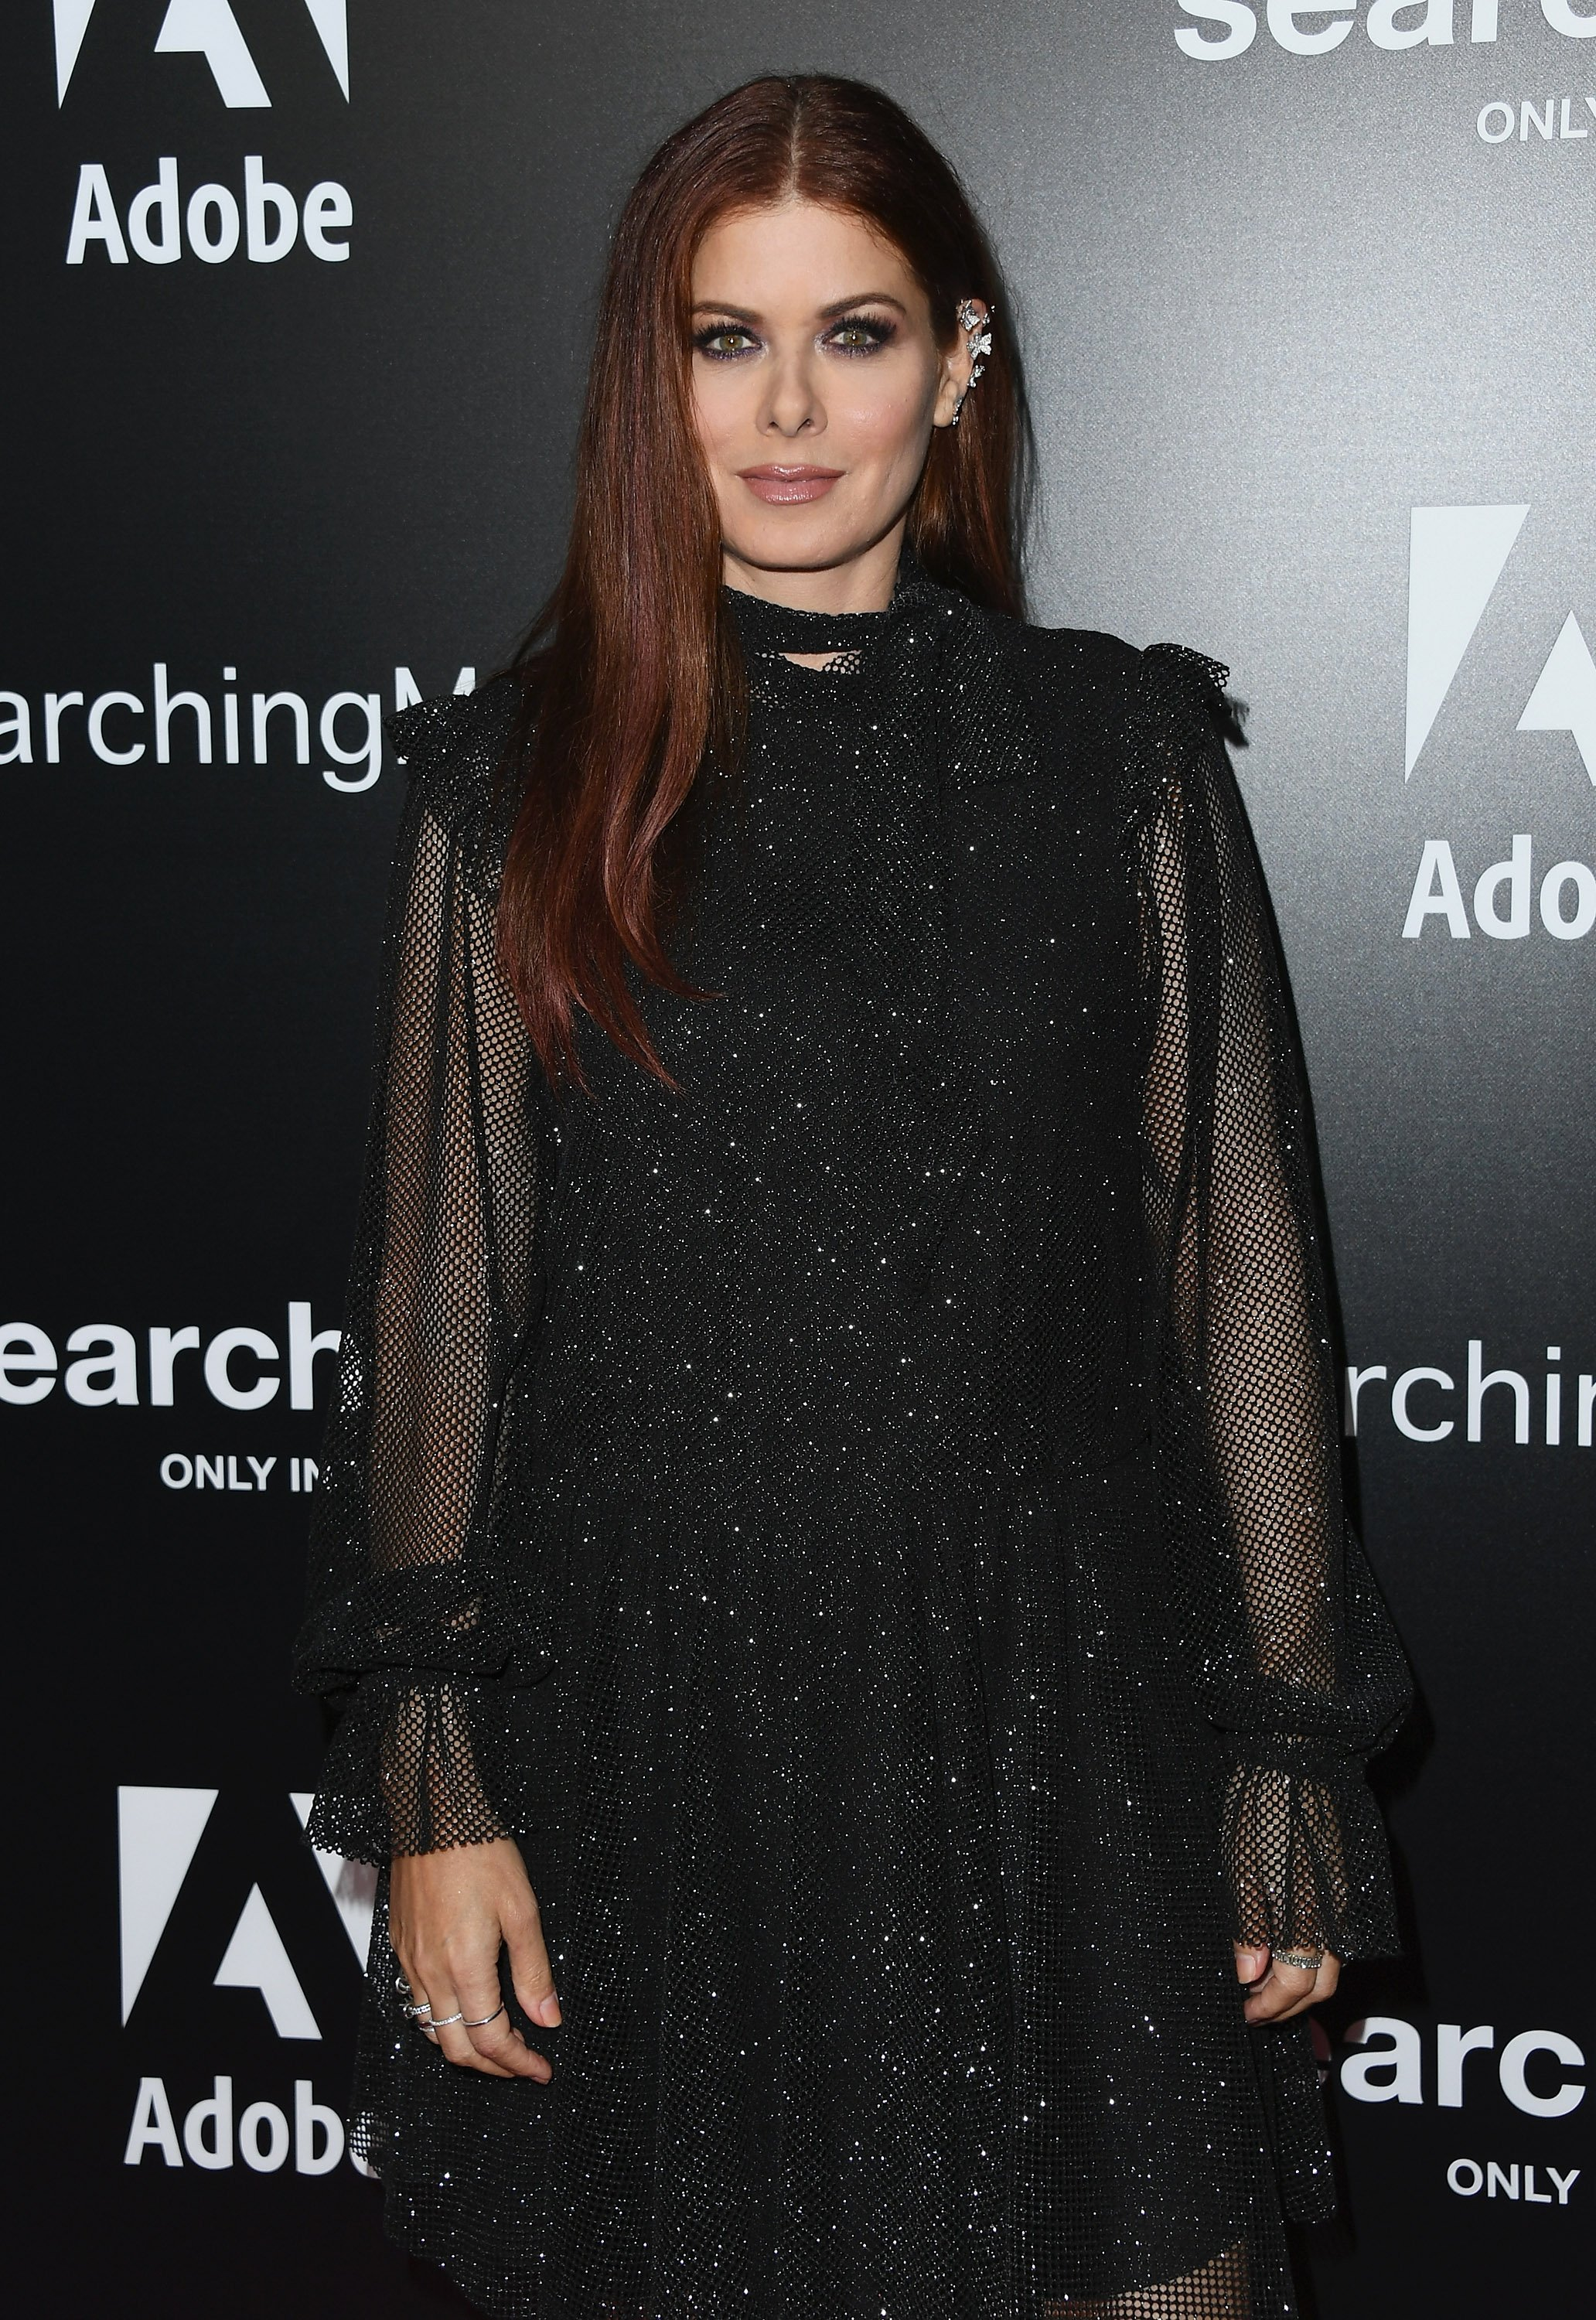 """Debra Messing attends the screening of Stage 6 Films' """"Searching"""" at ArcLight Hollywood on August 20, 2018 in Hollywood, California 